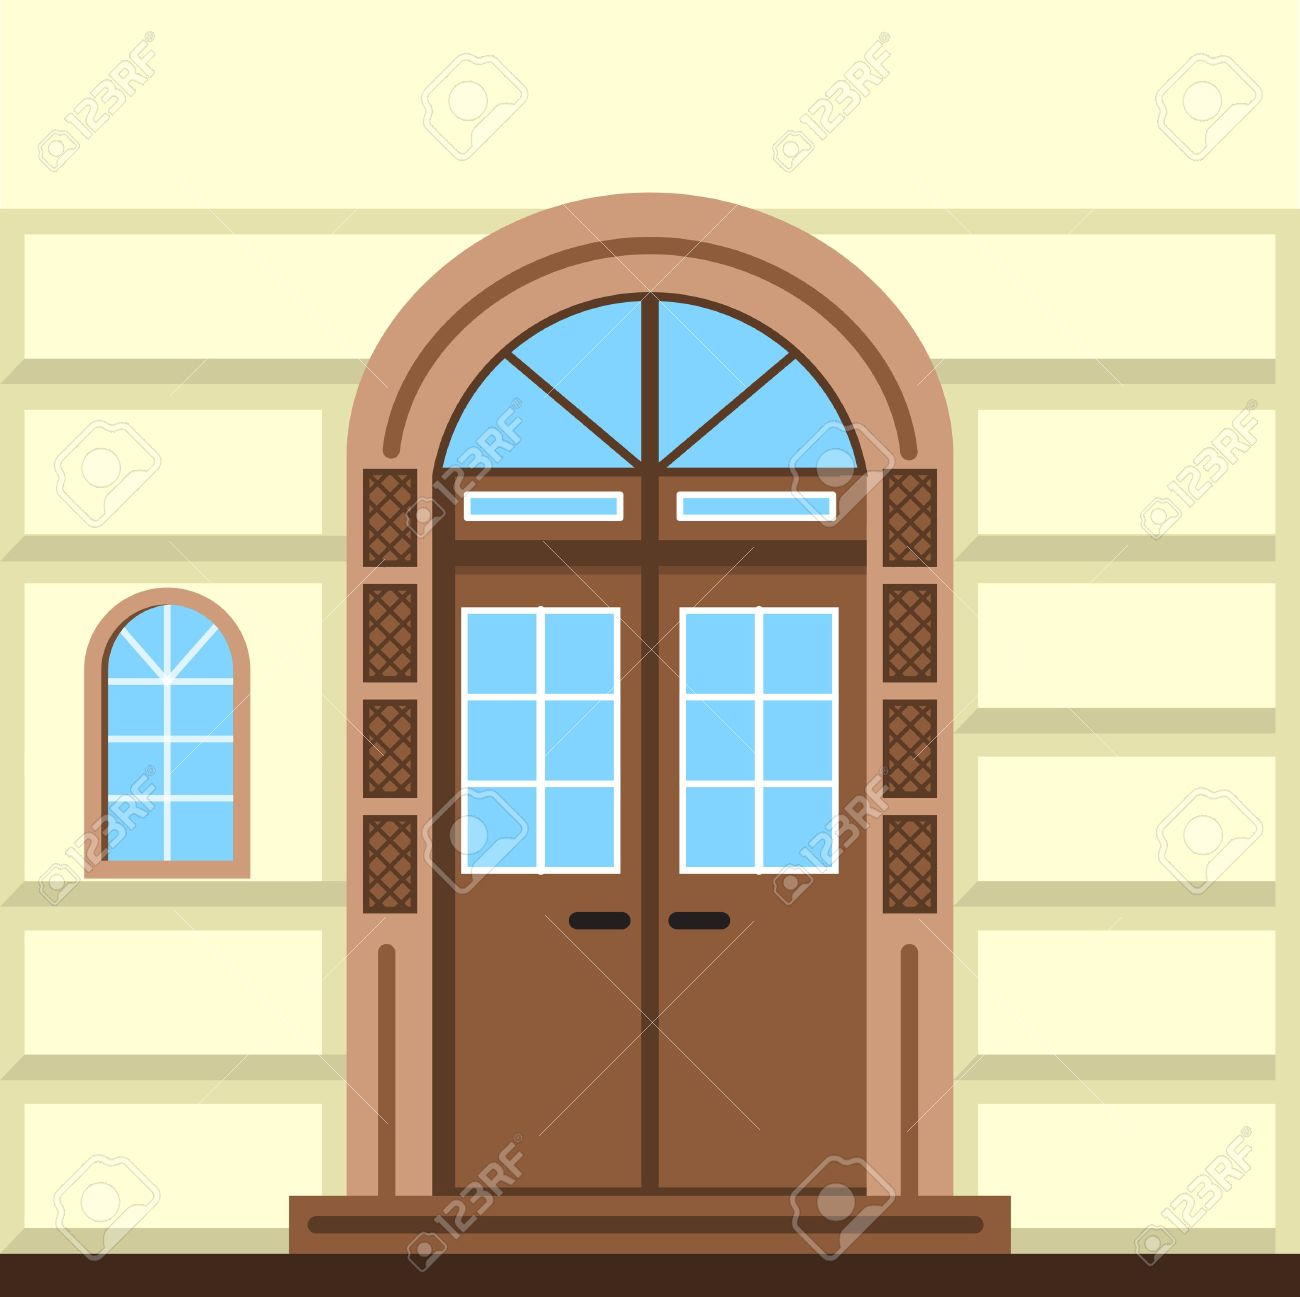 Flat Color Vector Illustration Of Brown Facade Door With Arch.